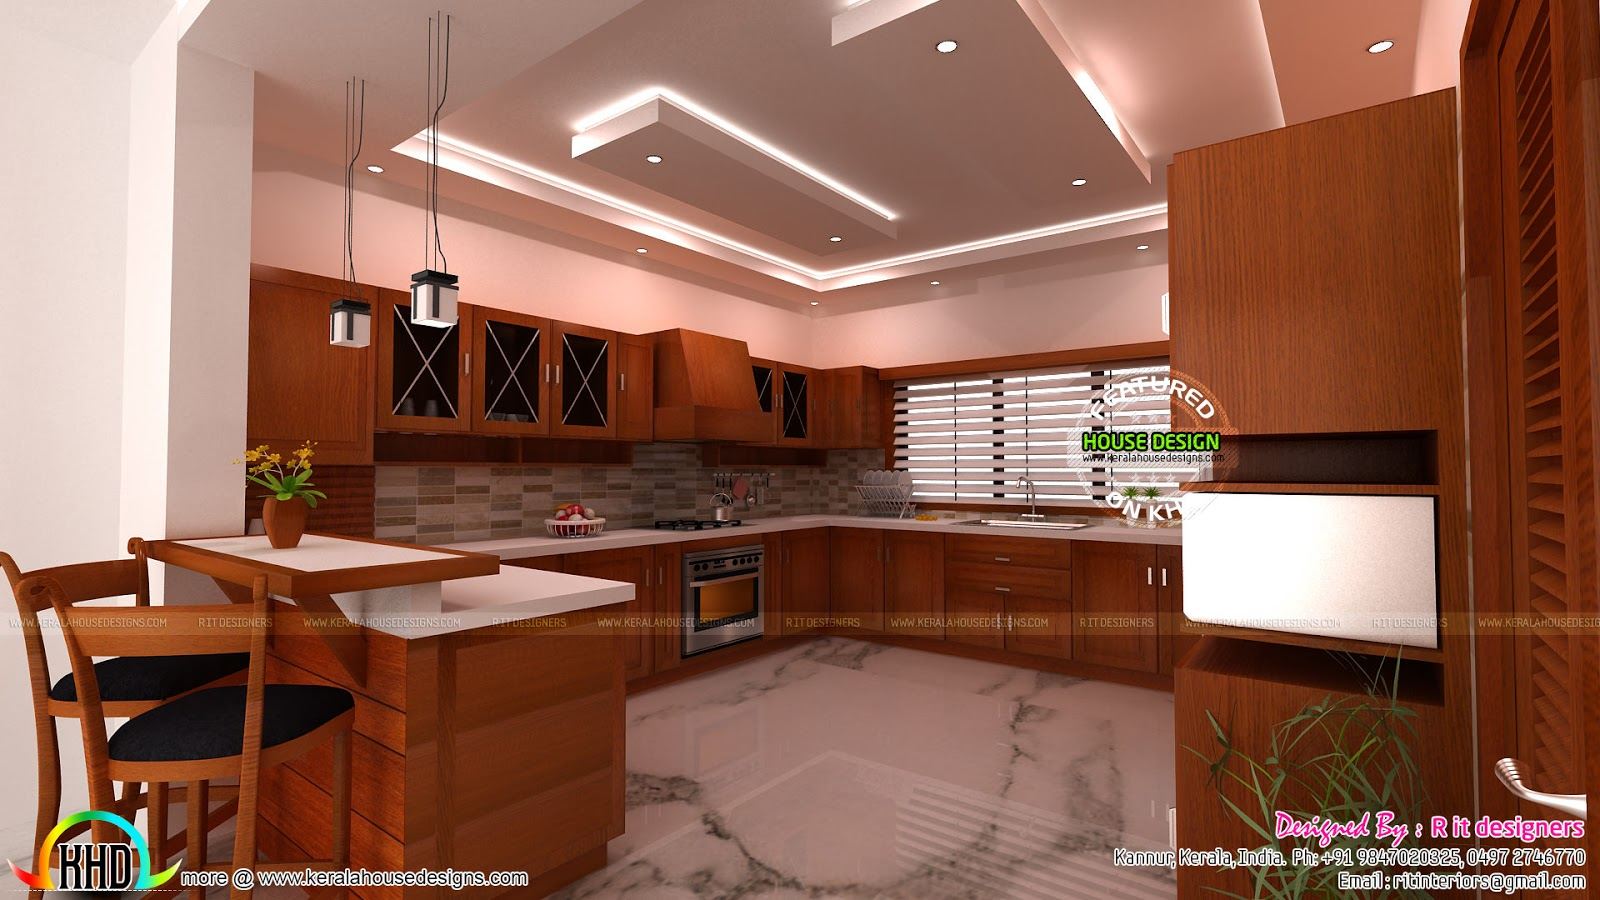 modular kitchen living and dining interiors kerala home design and floor plans. Black Bedroom Furniture Sets. Home Design Ideas